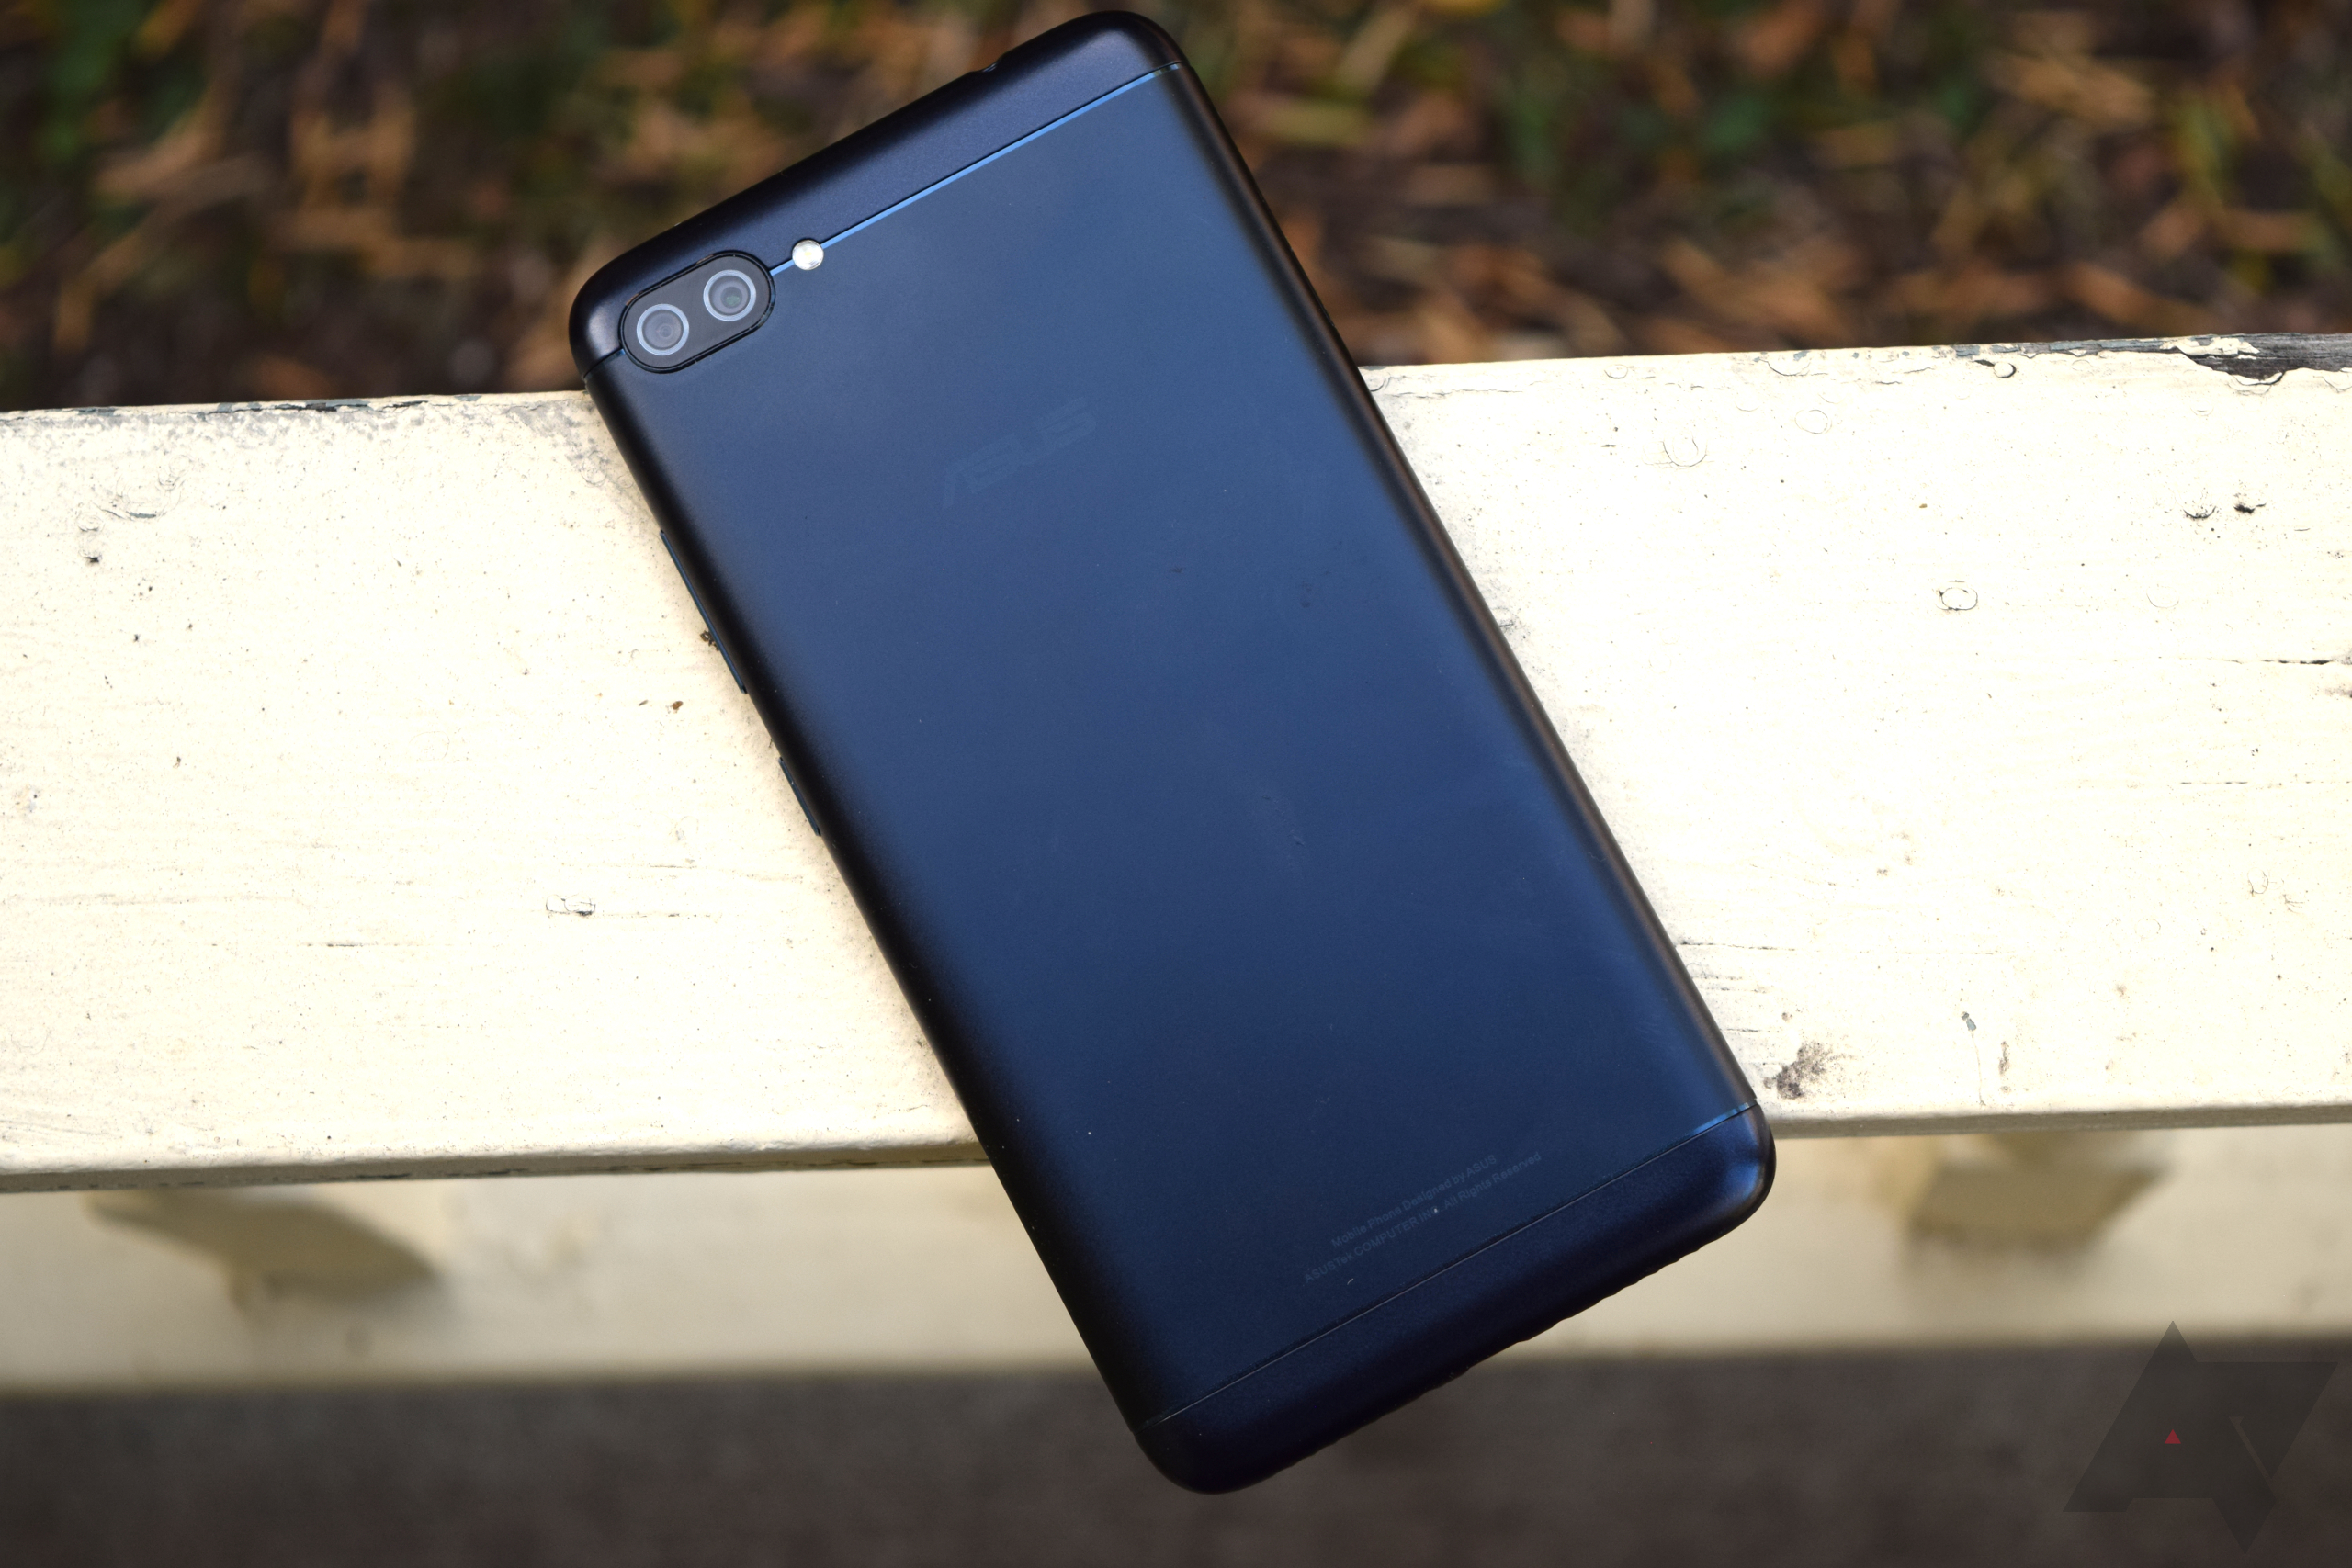 Asus Zenfone 4 Max Review Not A Shining Example Of Good Budget Phone Lcd Touchscreen 6 Original Just Announced Its Family Devices Couple Months Ago Creating Convoluted And Confusing Portfolio To Kick Things Off